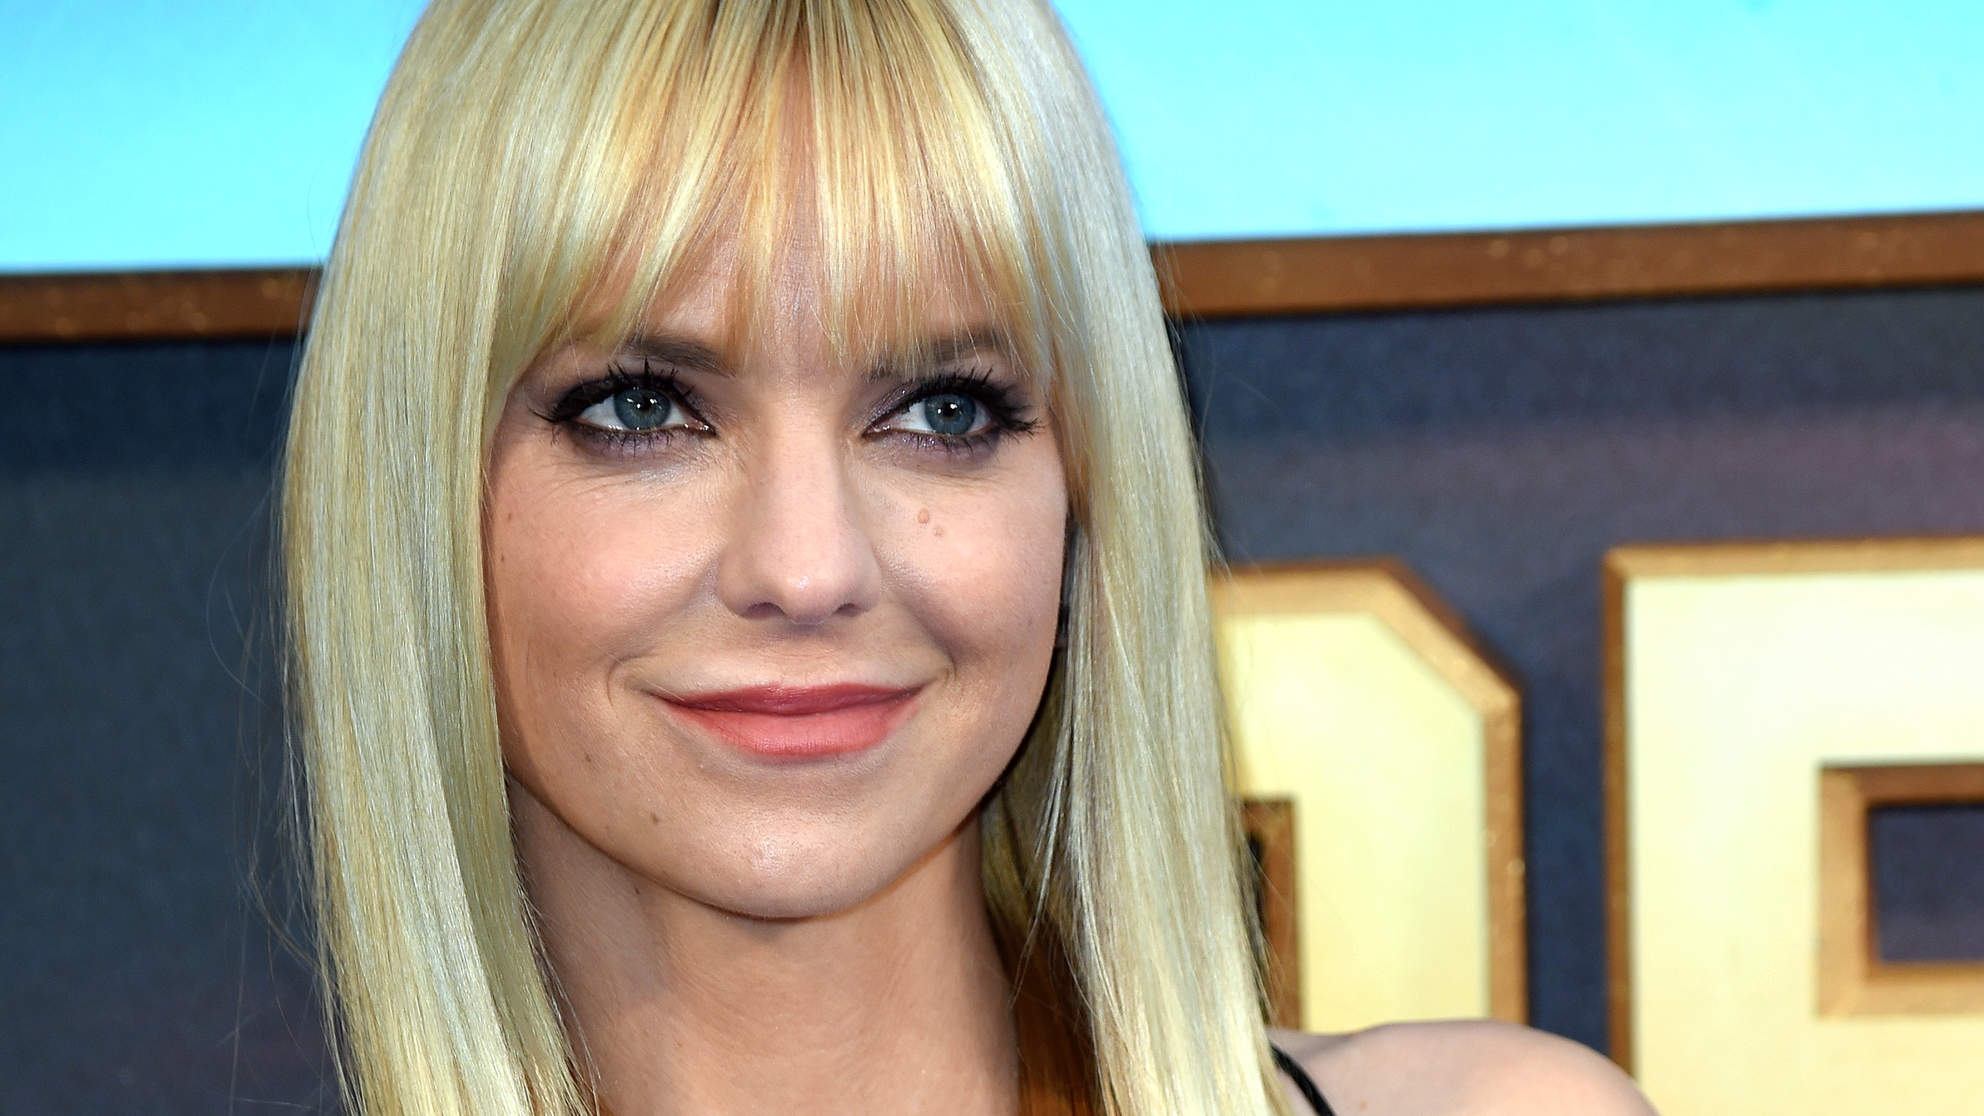 Anna Faris Opens Up About Son Jack's Health Battle in Revealing New Book: 'It Was Us Against the World'